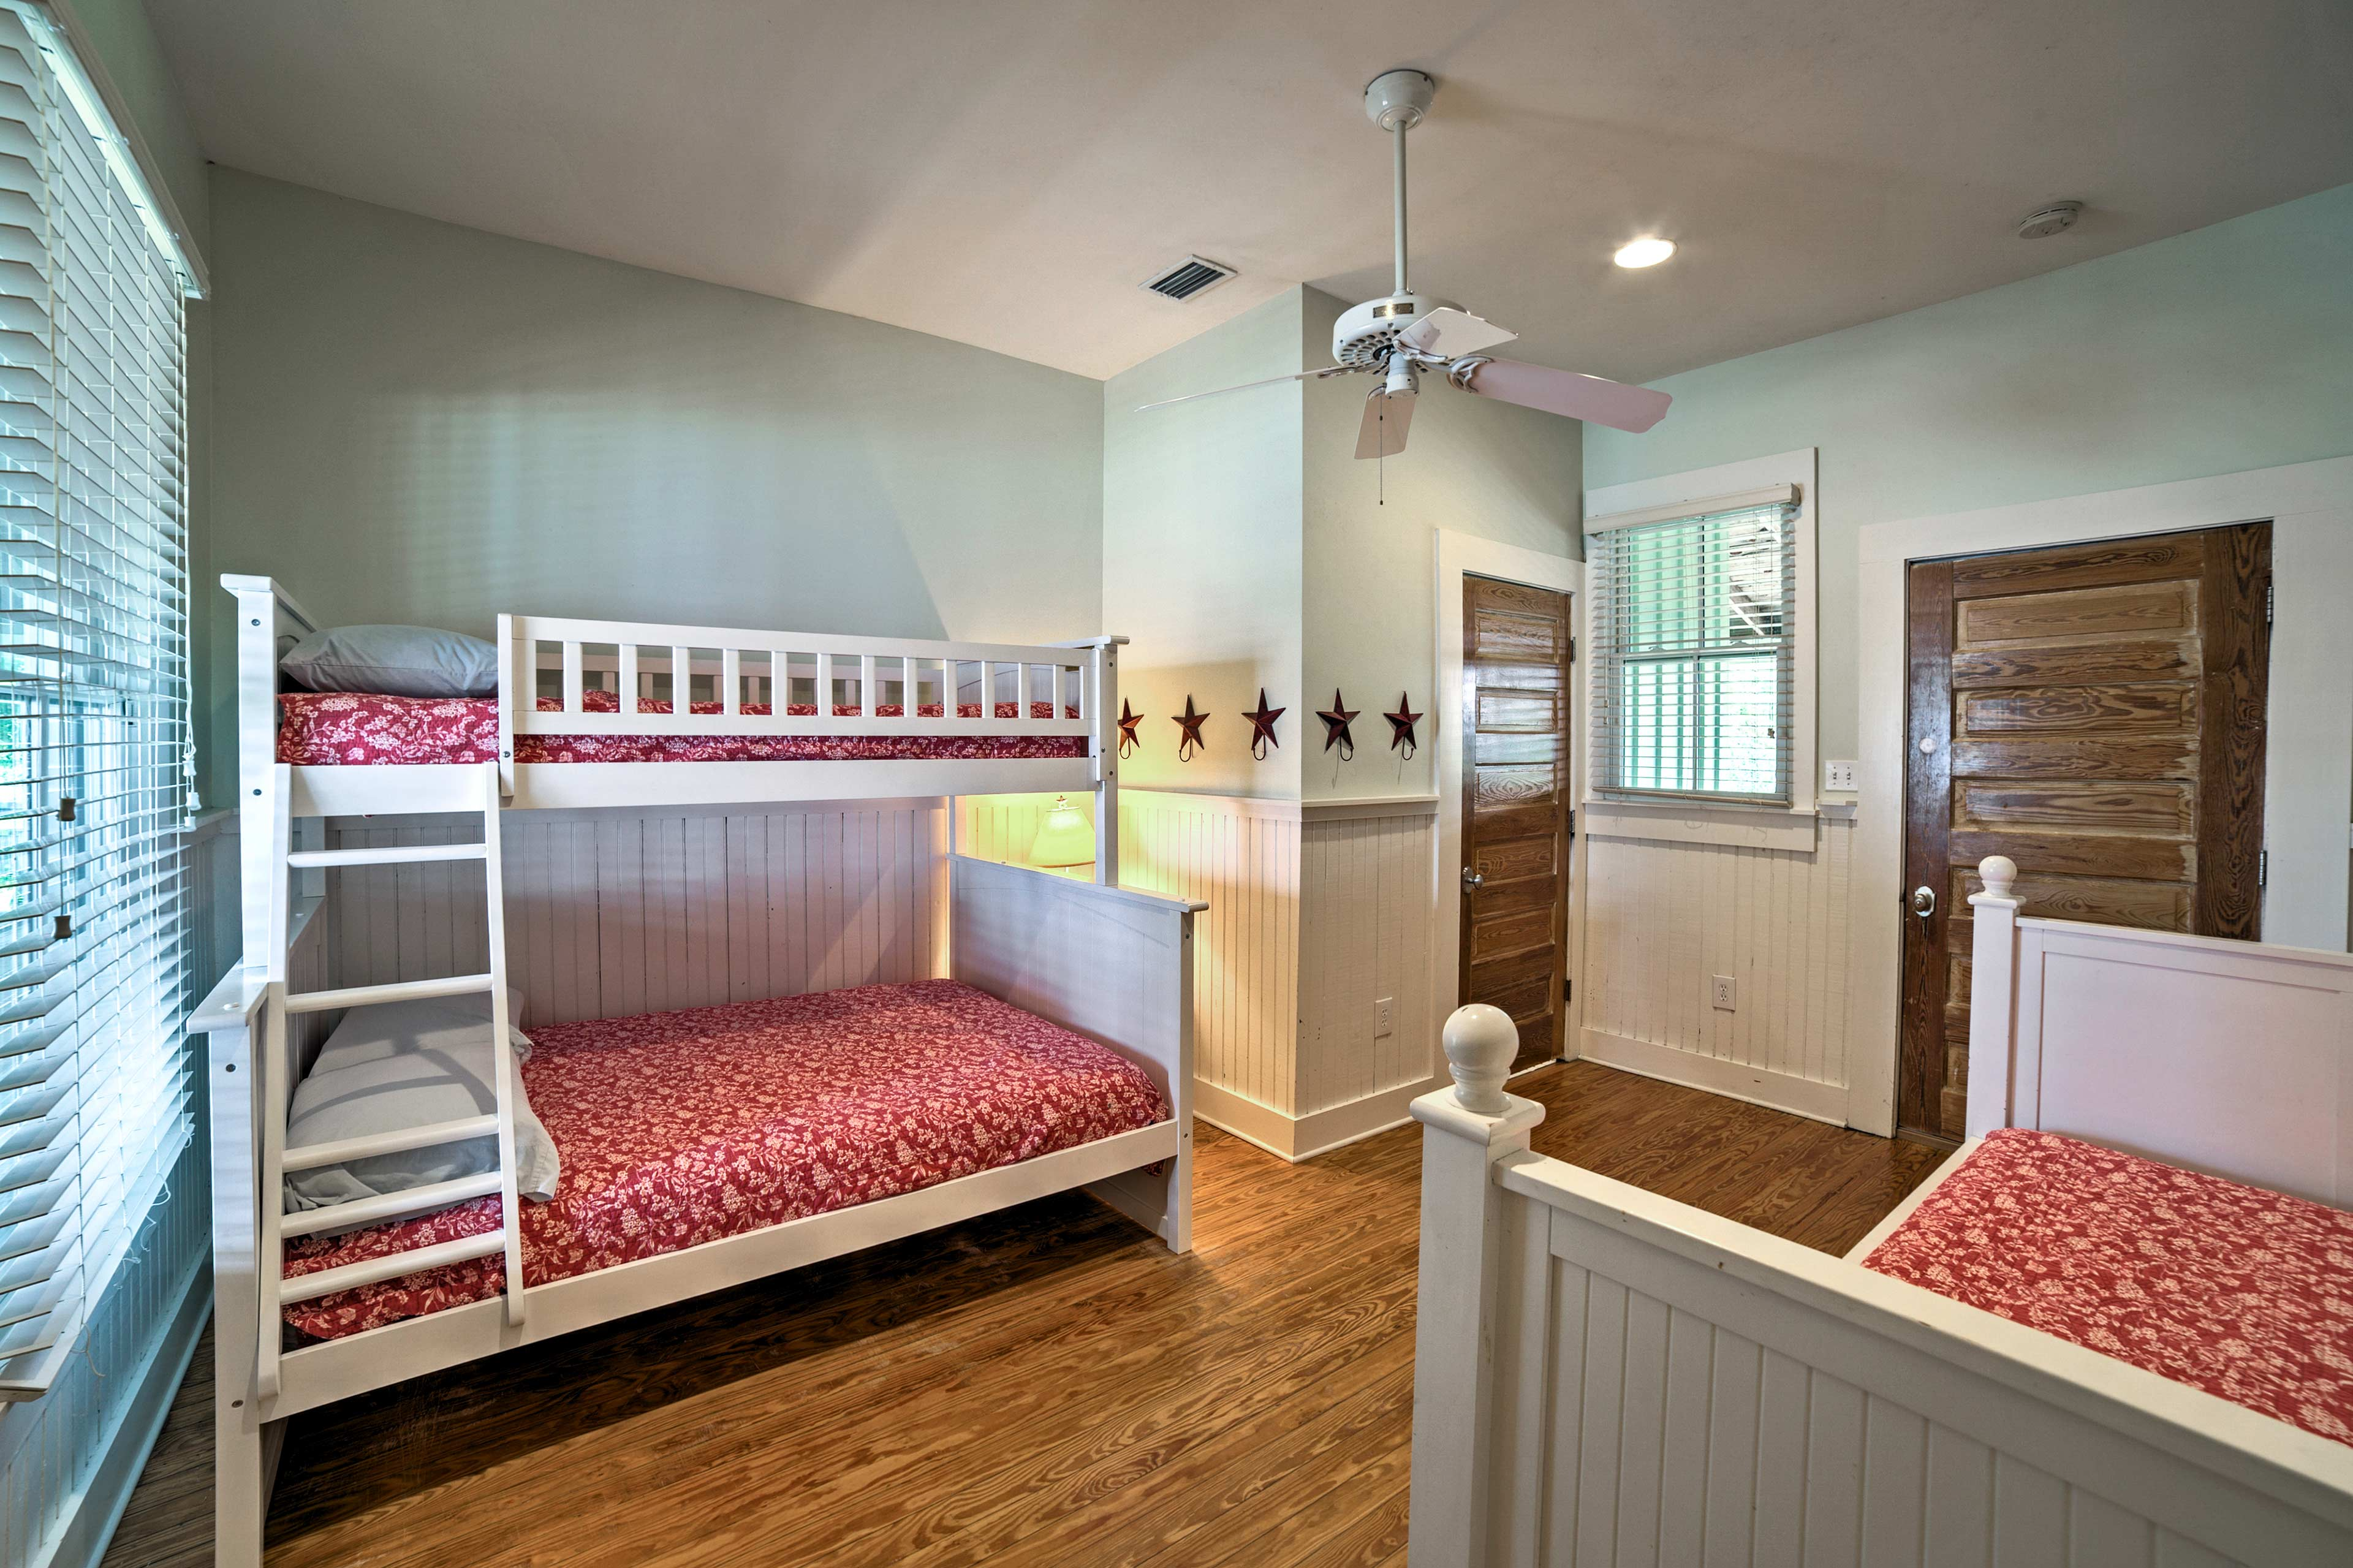 Up to 5 young ones can sleep in this bedroom.